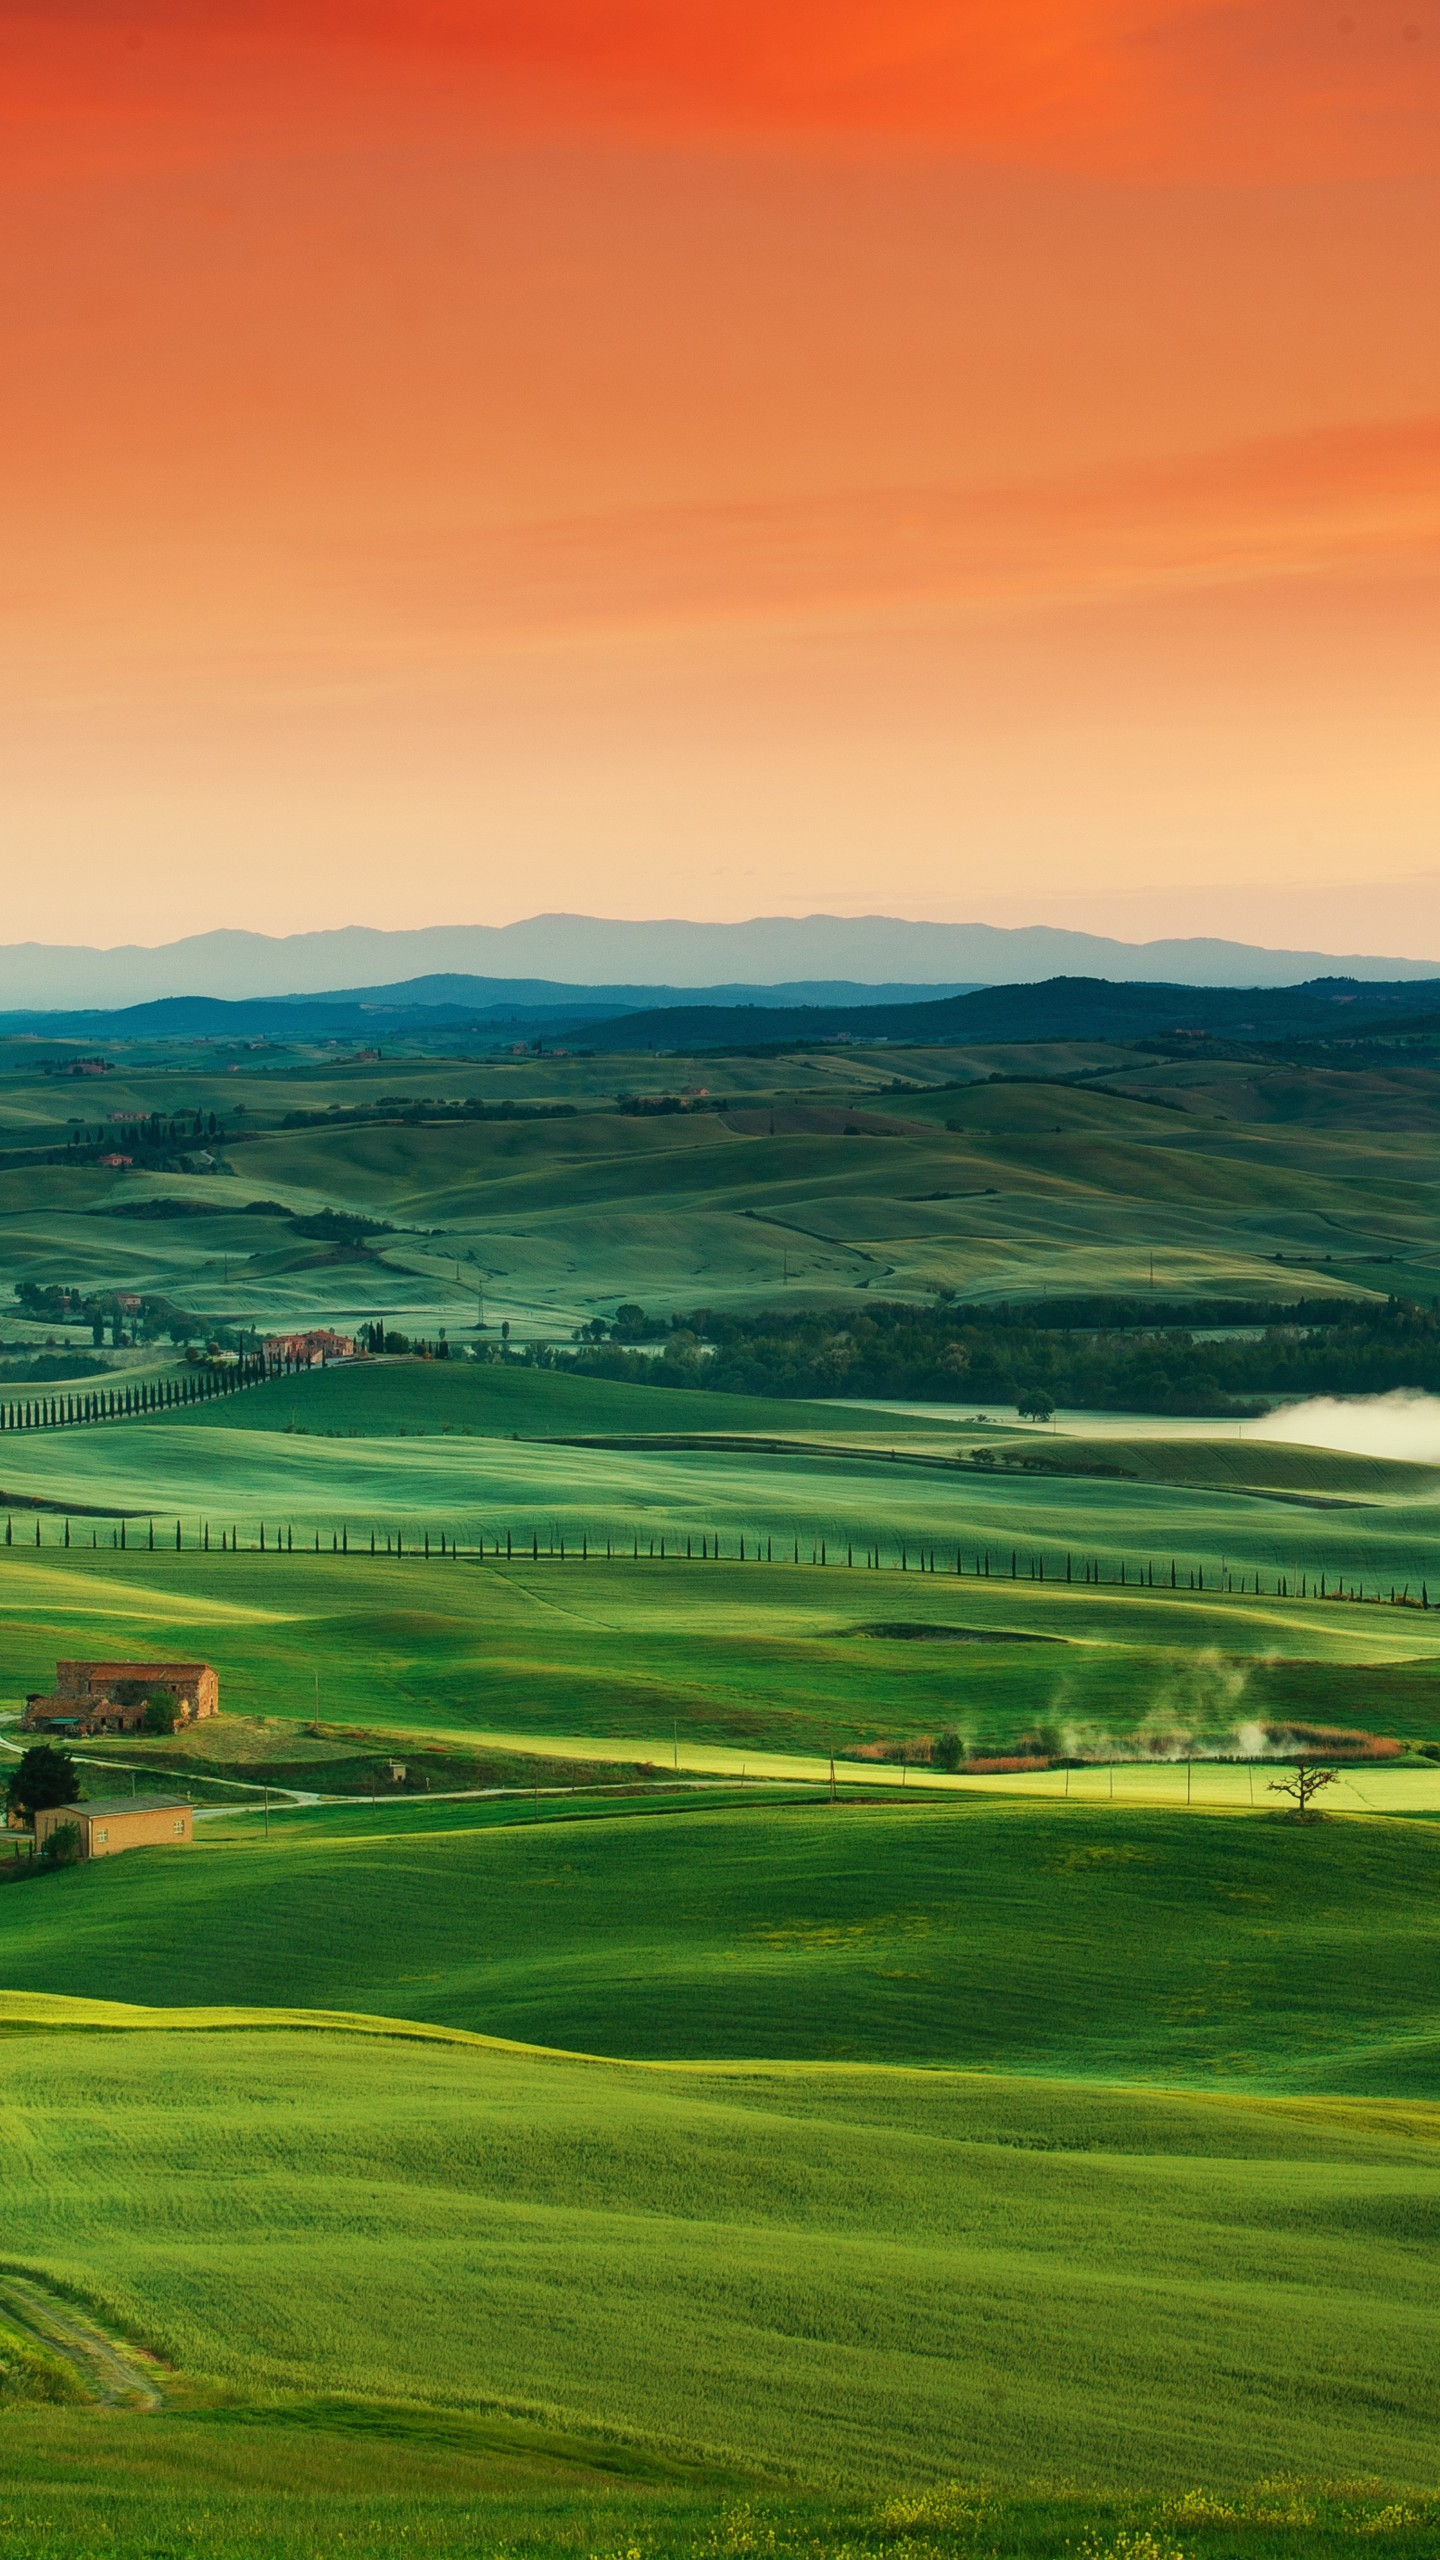 Download Cool Quotes Wallpapers Wallpaper Tuscany 5k 4k Wallpaper 8k Italy Landscape